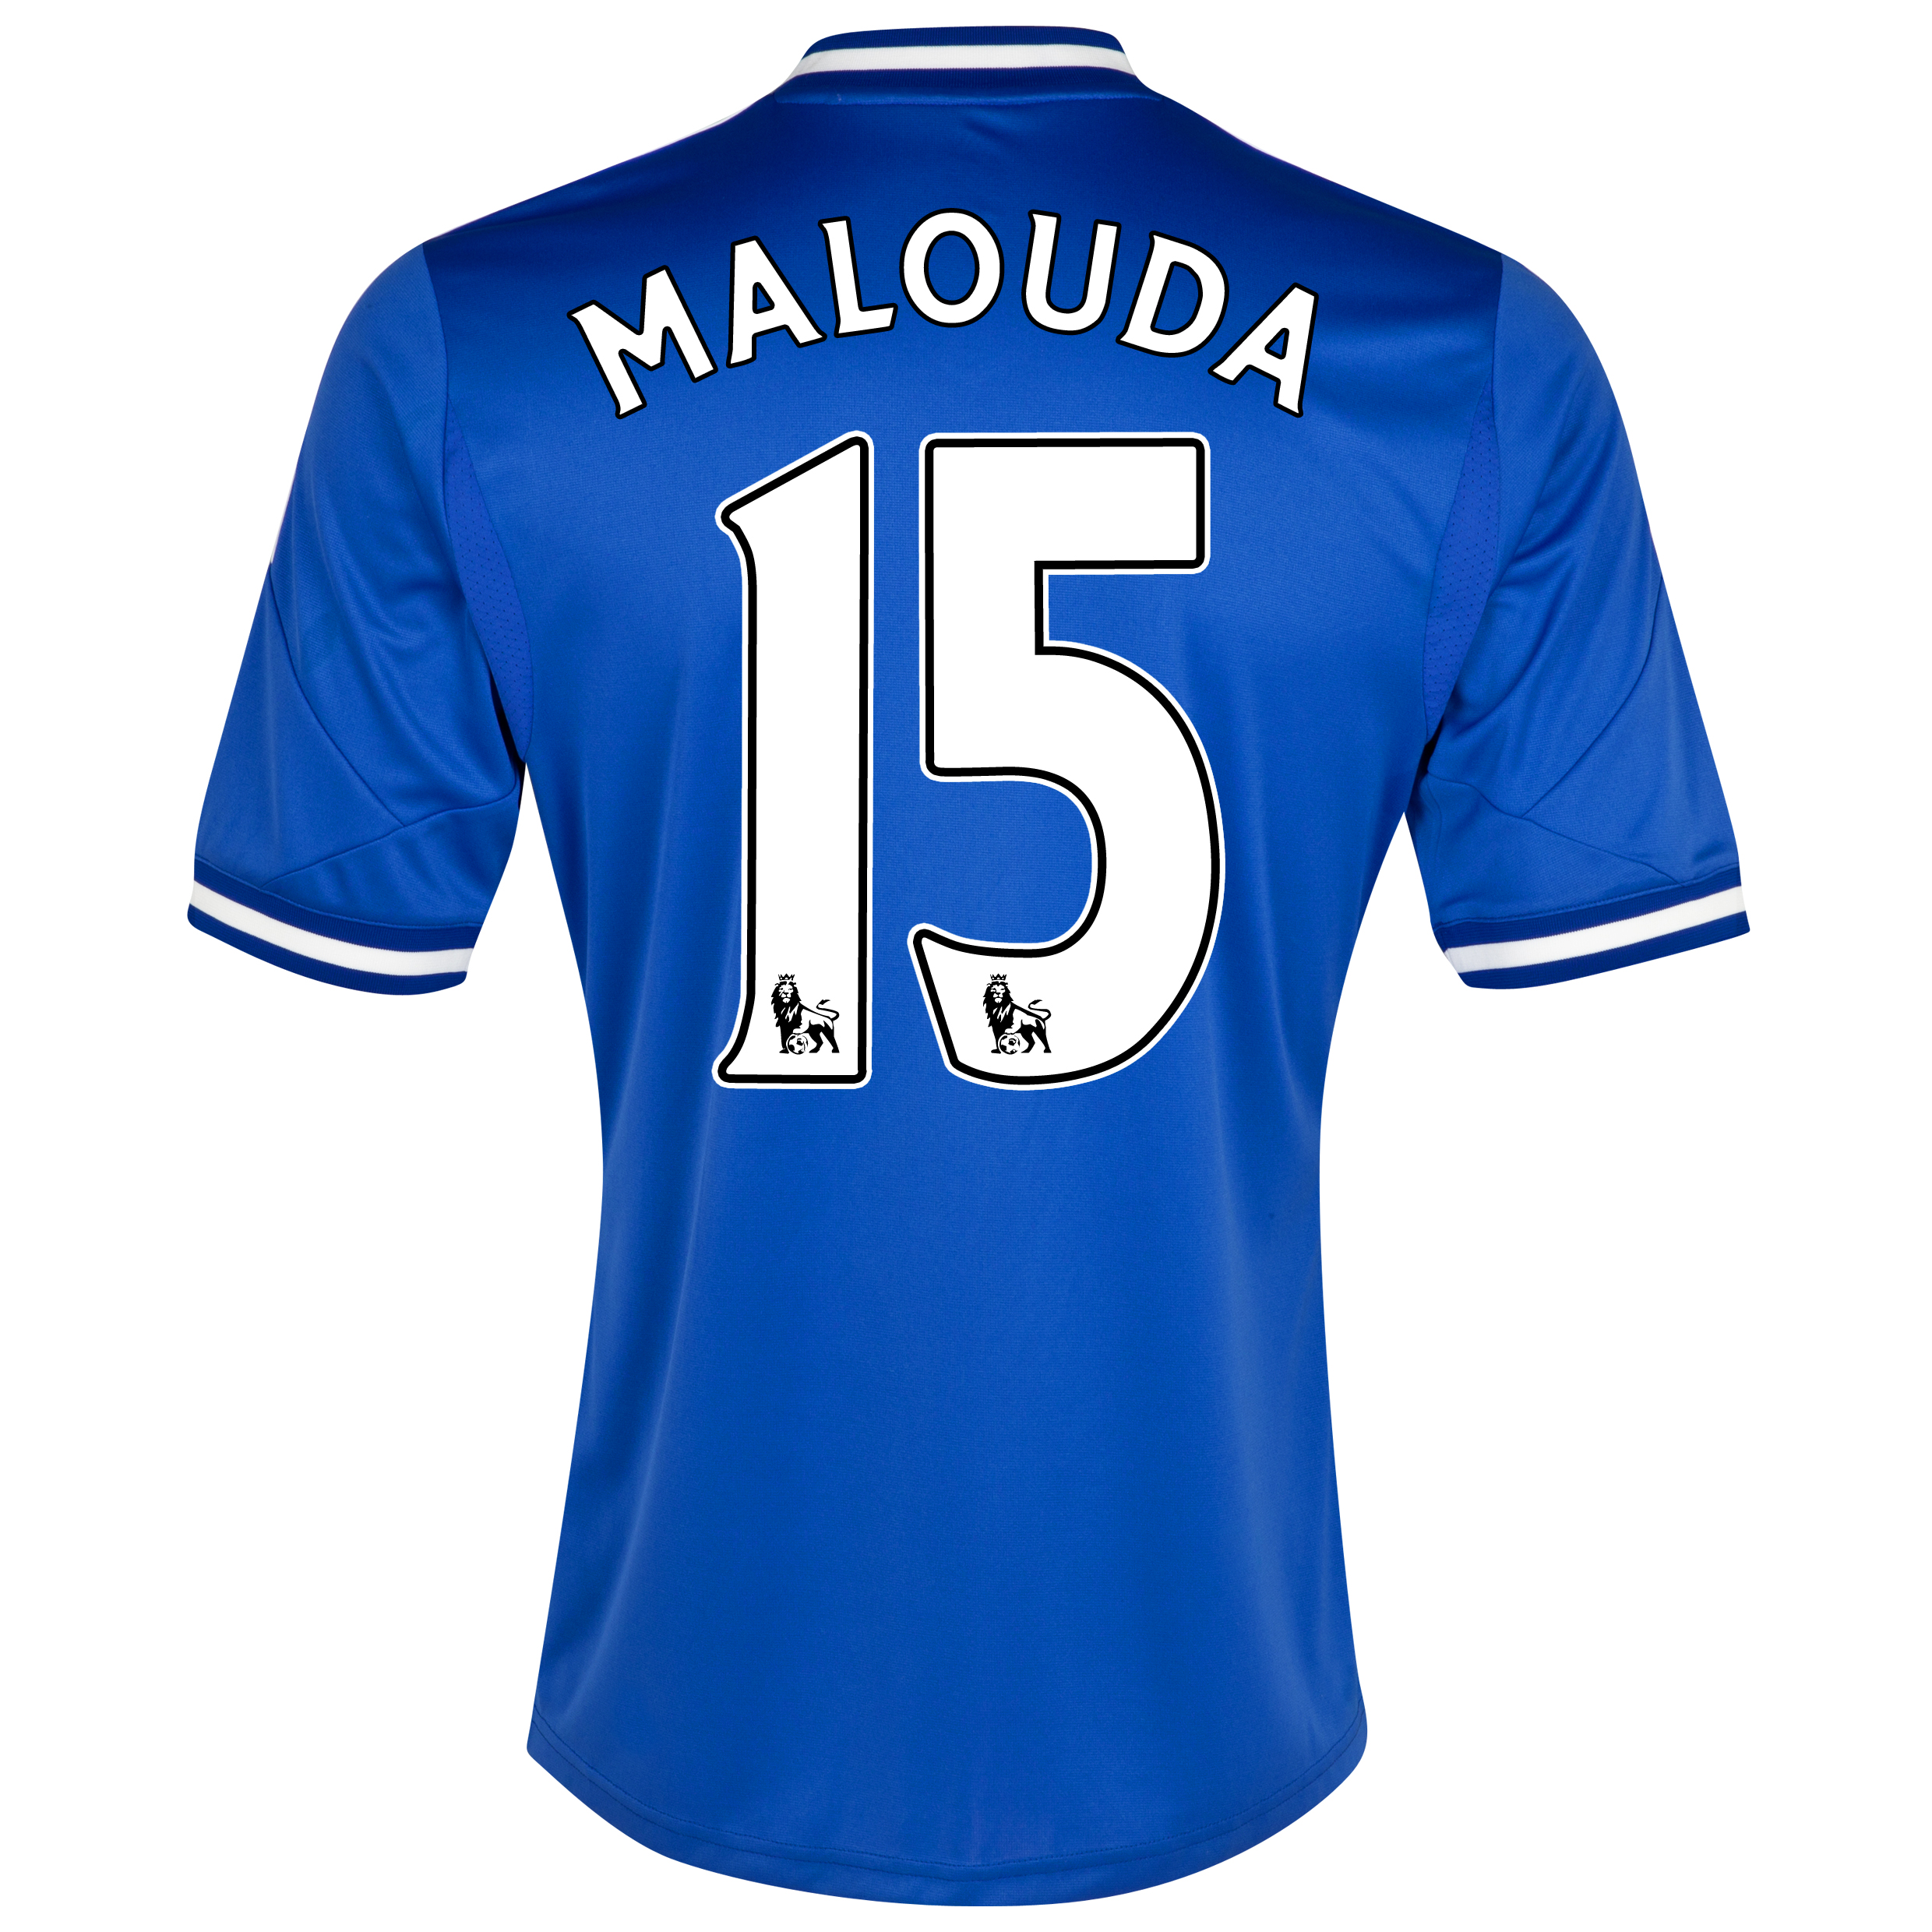 Chelsea Home Shirt 2013/14 with Malouda 15 printing